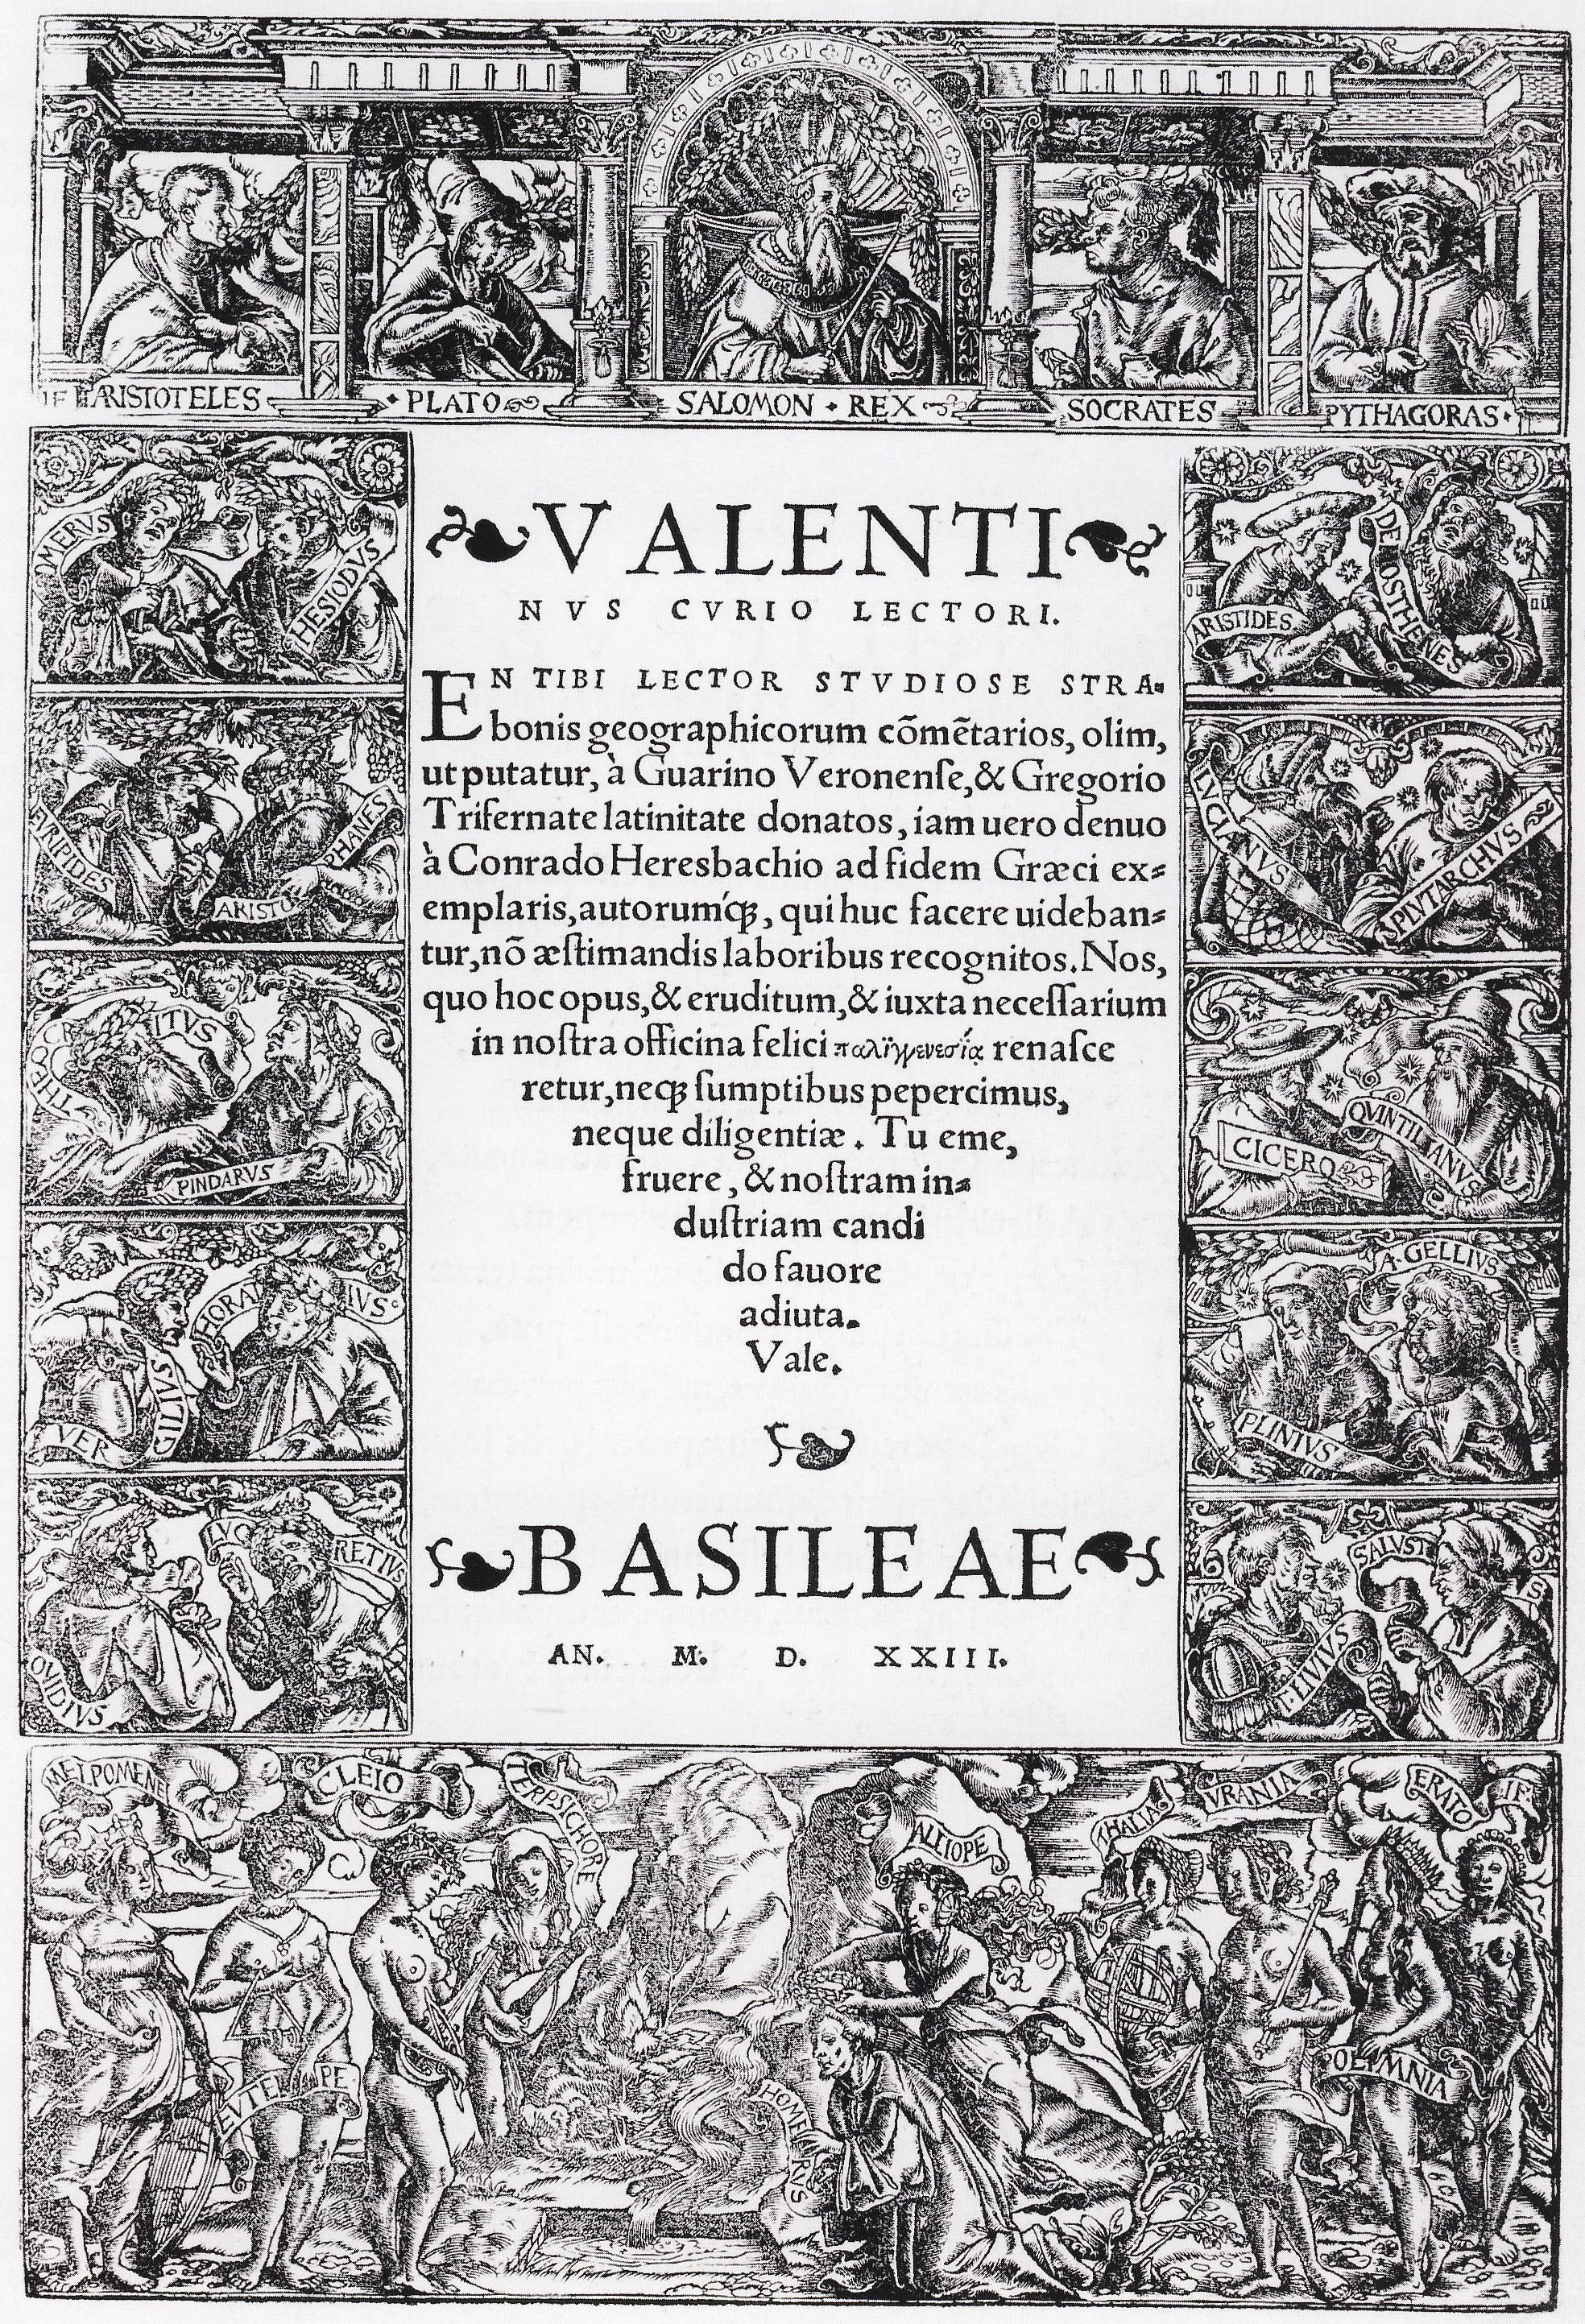 Style Page Borders http://commons.wikimedia.org/wiki/File:Title_Page_Border_with_Greek_and_Roman_Philosophers,_by_Hans_Holbein_the_Younger.jpg